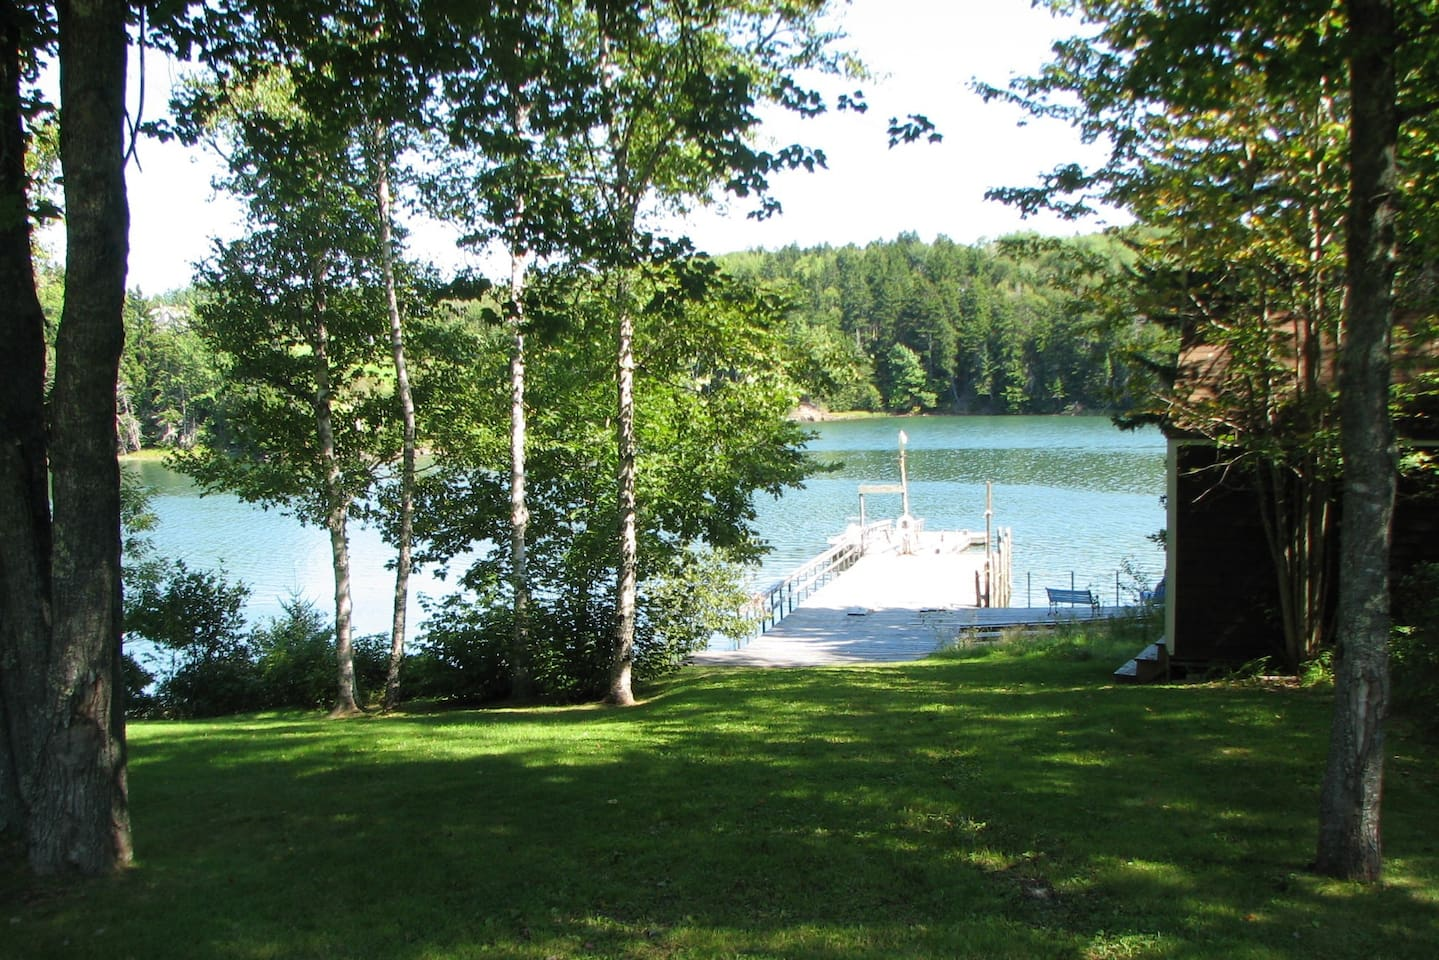 Maine waterfront hideaway houses for rent in friendship maine maine waterfront hideaway houses for rent in friendship maine united states geenschuldenfo Choice Image